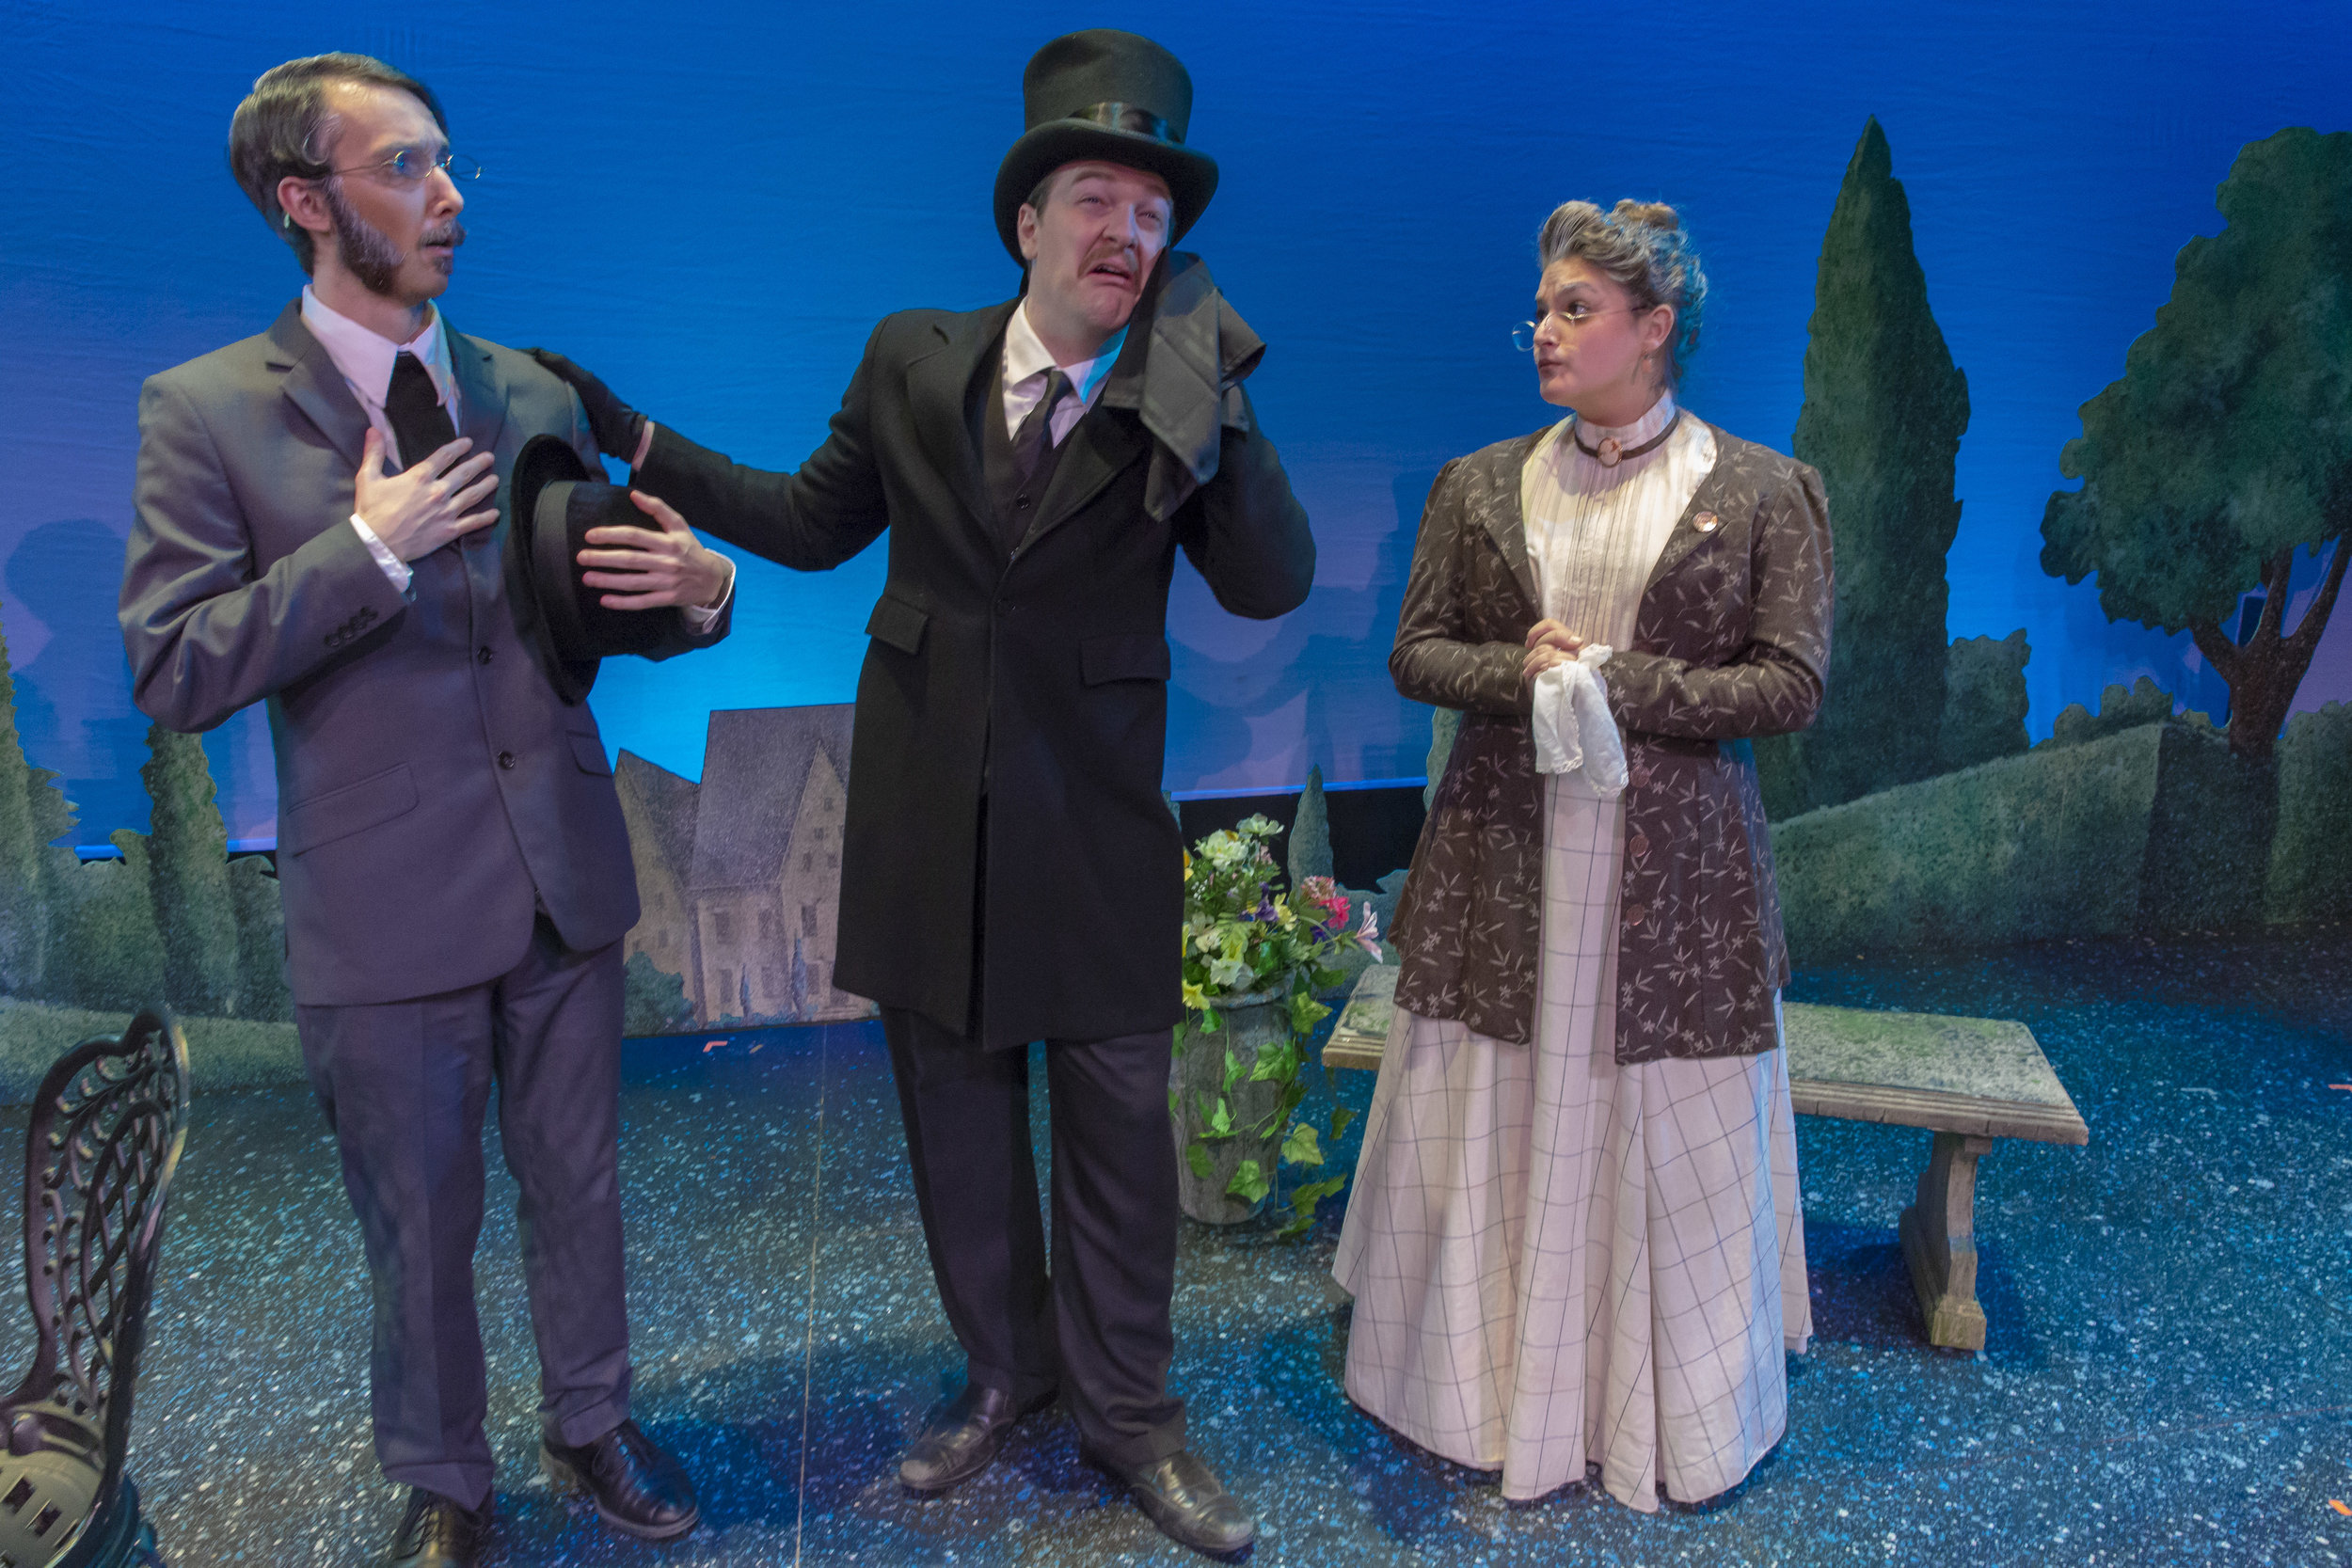 The Importance of Being Earnest  at Lafayette College (2018), directed by Michael O'Neill.